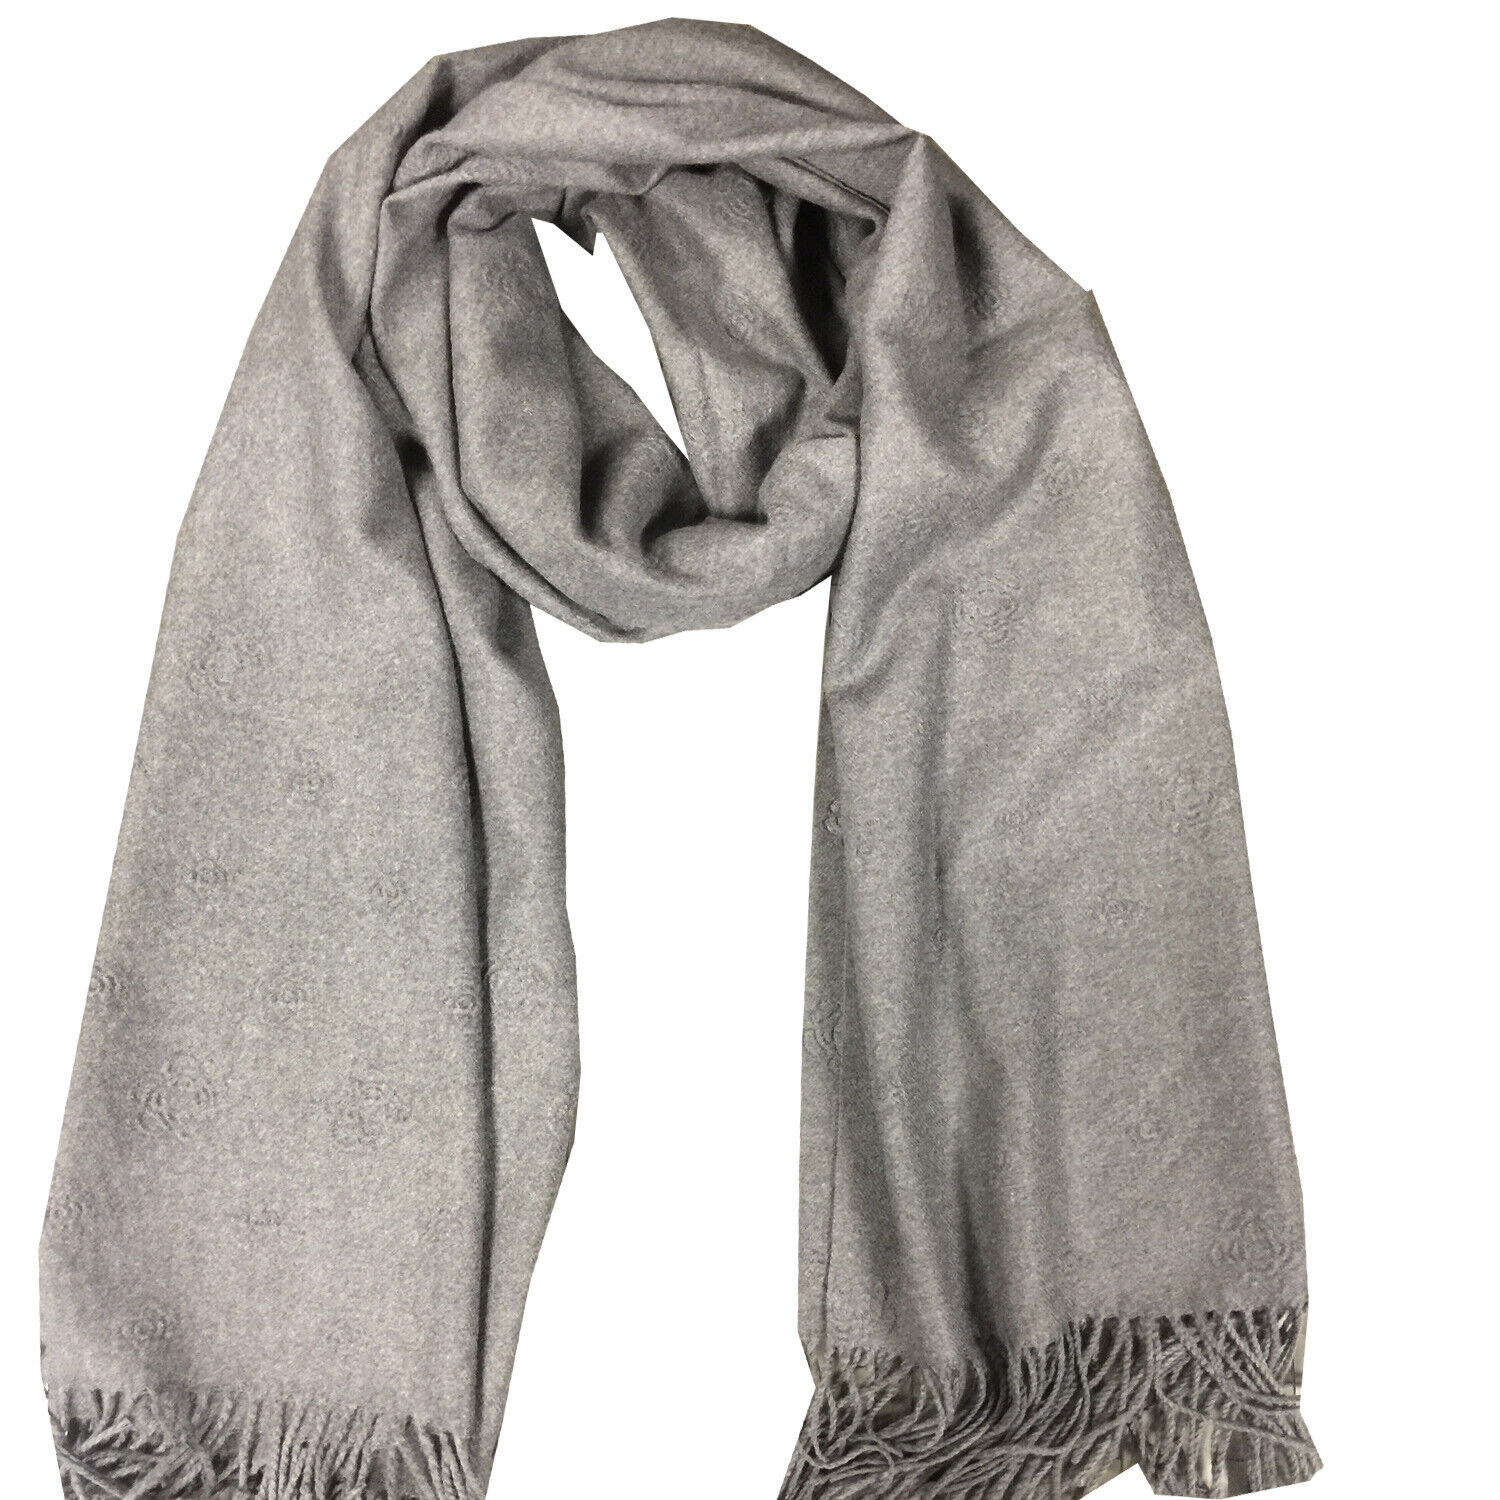 Cashmere Women Fashion Big Size Cashmere Scarf with Embossing Texture Warm Scarf Clothing, Shoes & Accessories